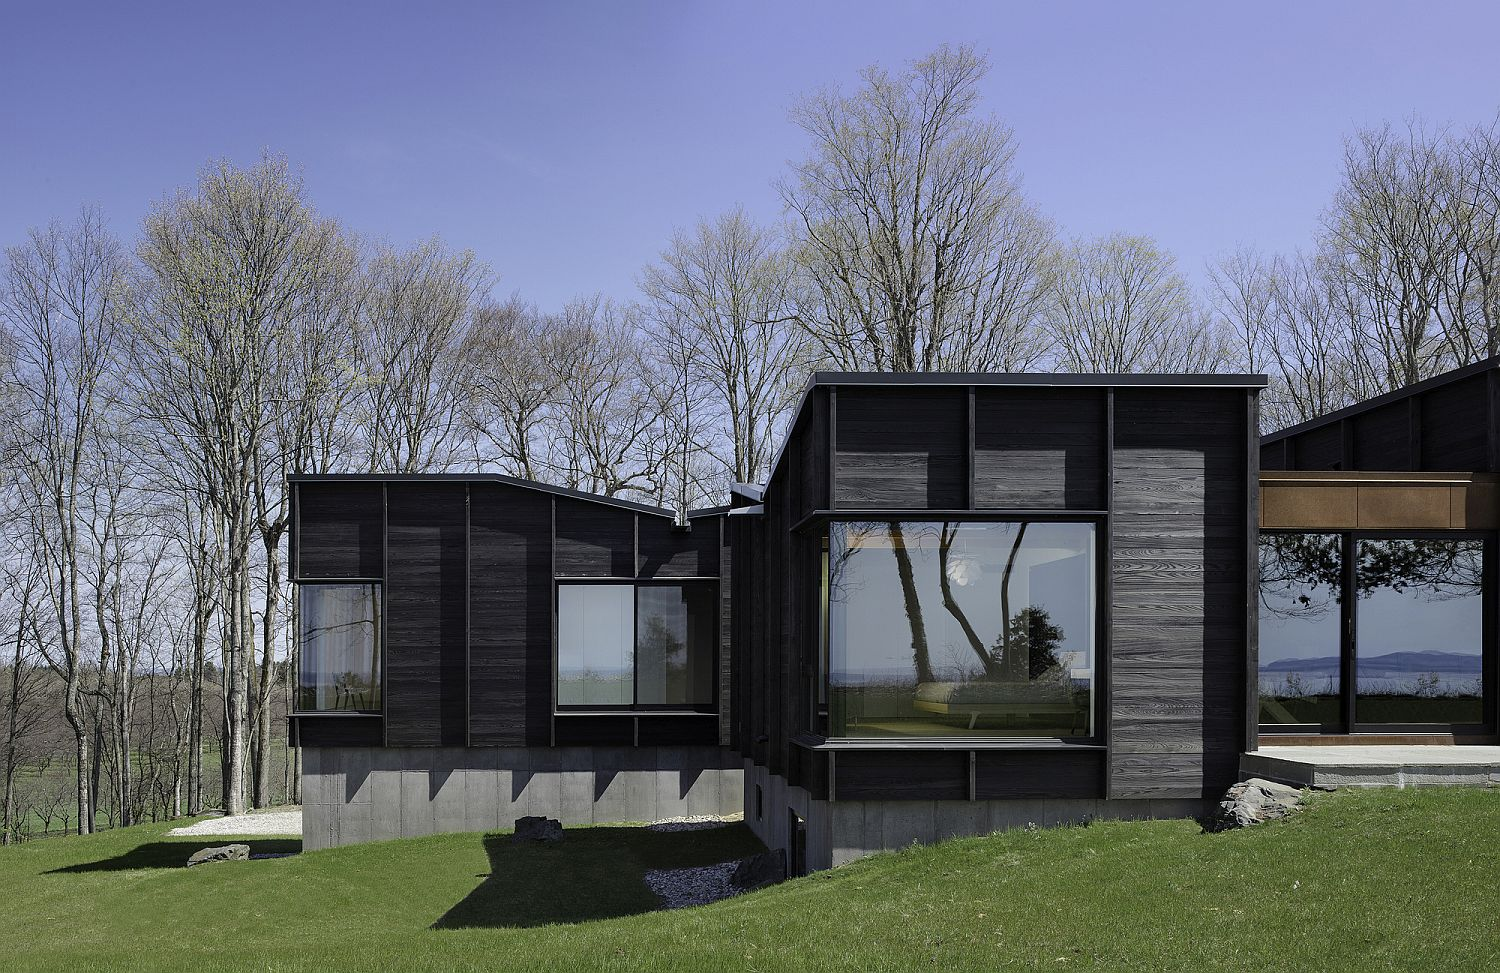 Unique charred wood and glass exterior of the lakeside house